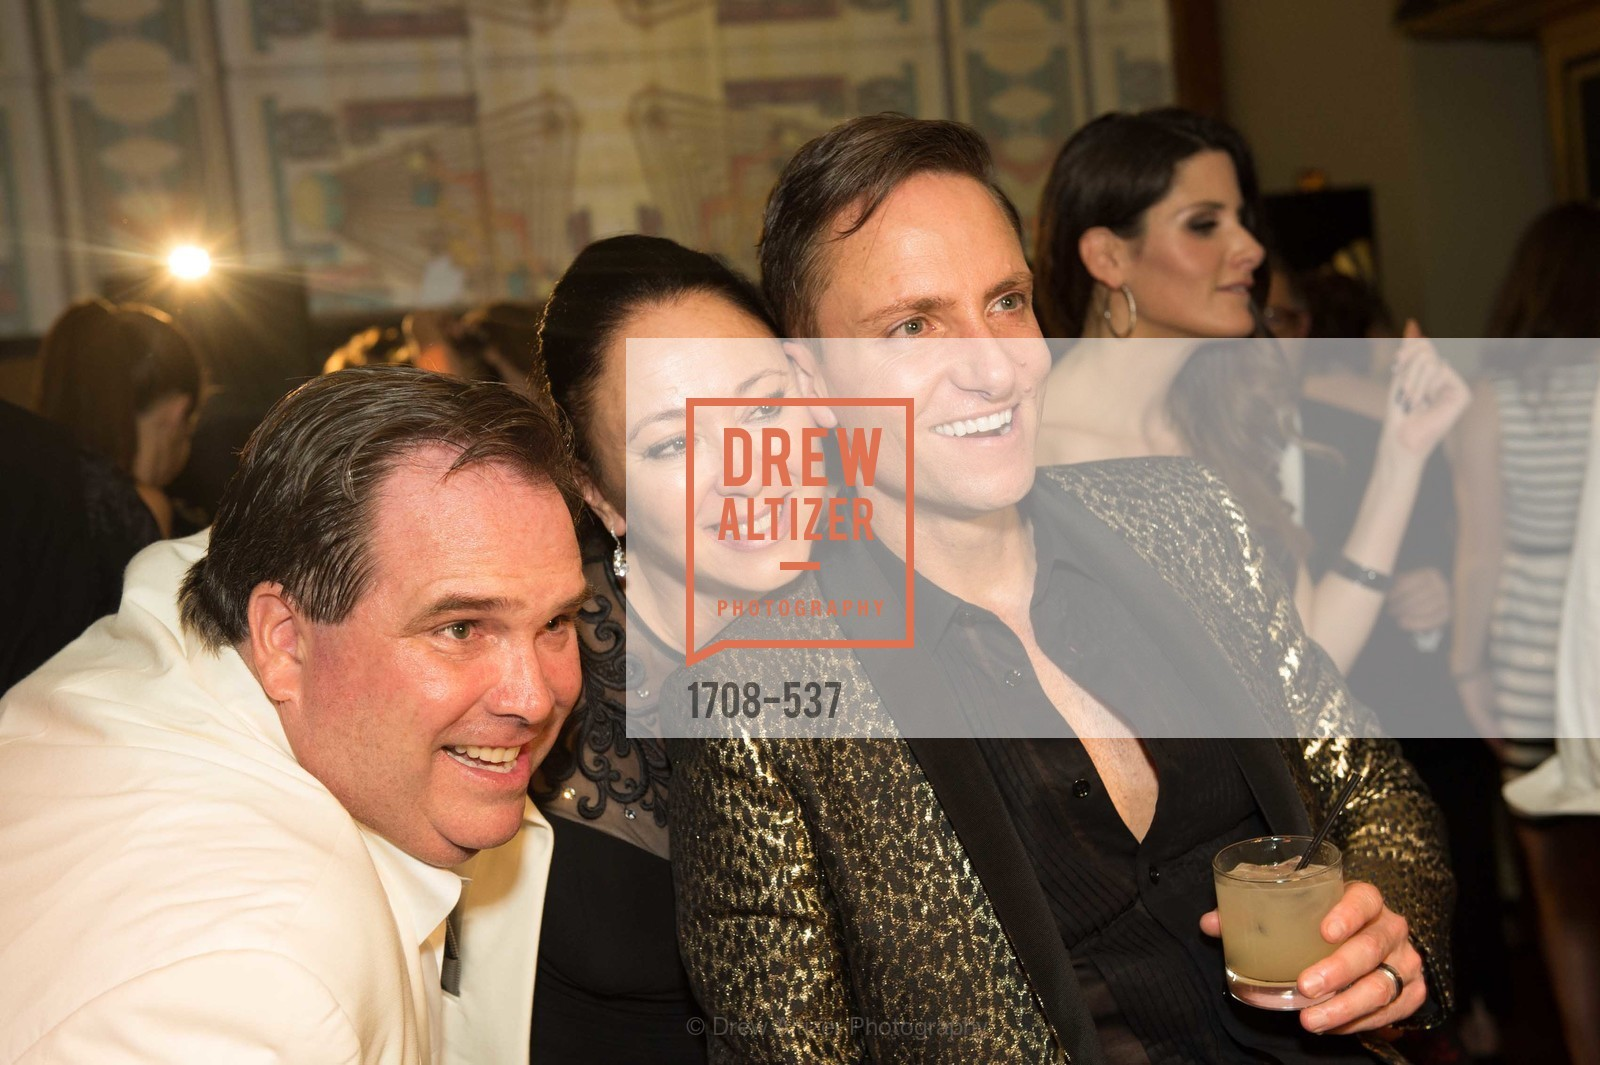 John Brady, Lisa Brady, Ken Fulk, TOP OF THE MARK'S 75TH Anniversary Party, US, November 7th, 2014,Drew Altizer, Drew Altizer Photography, full-service agency, private events, San Francisco photographer, photographer california